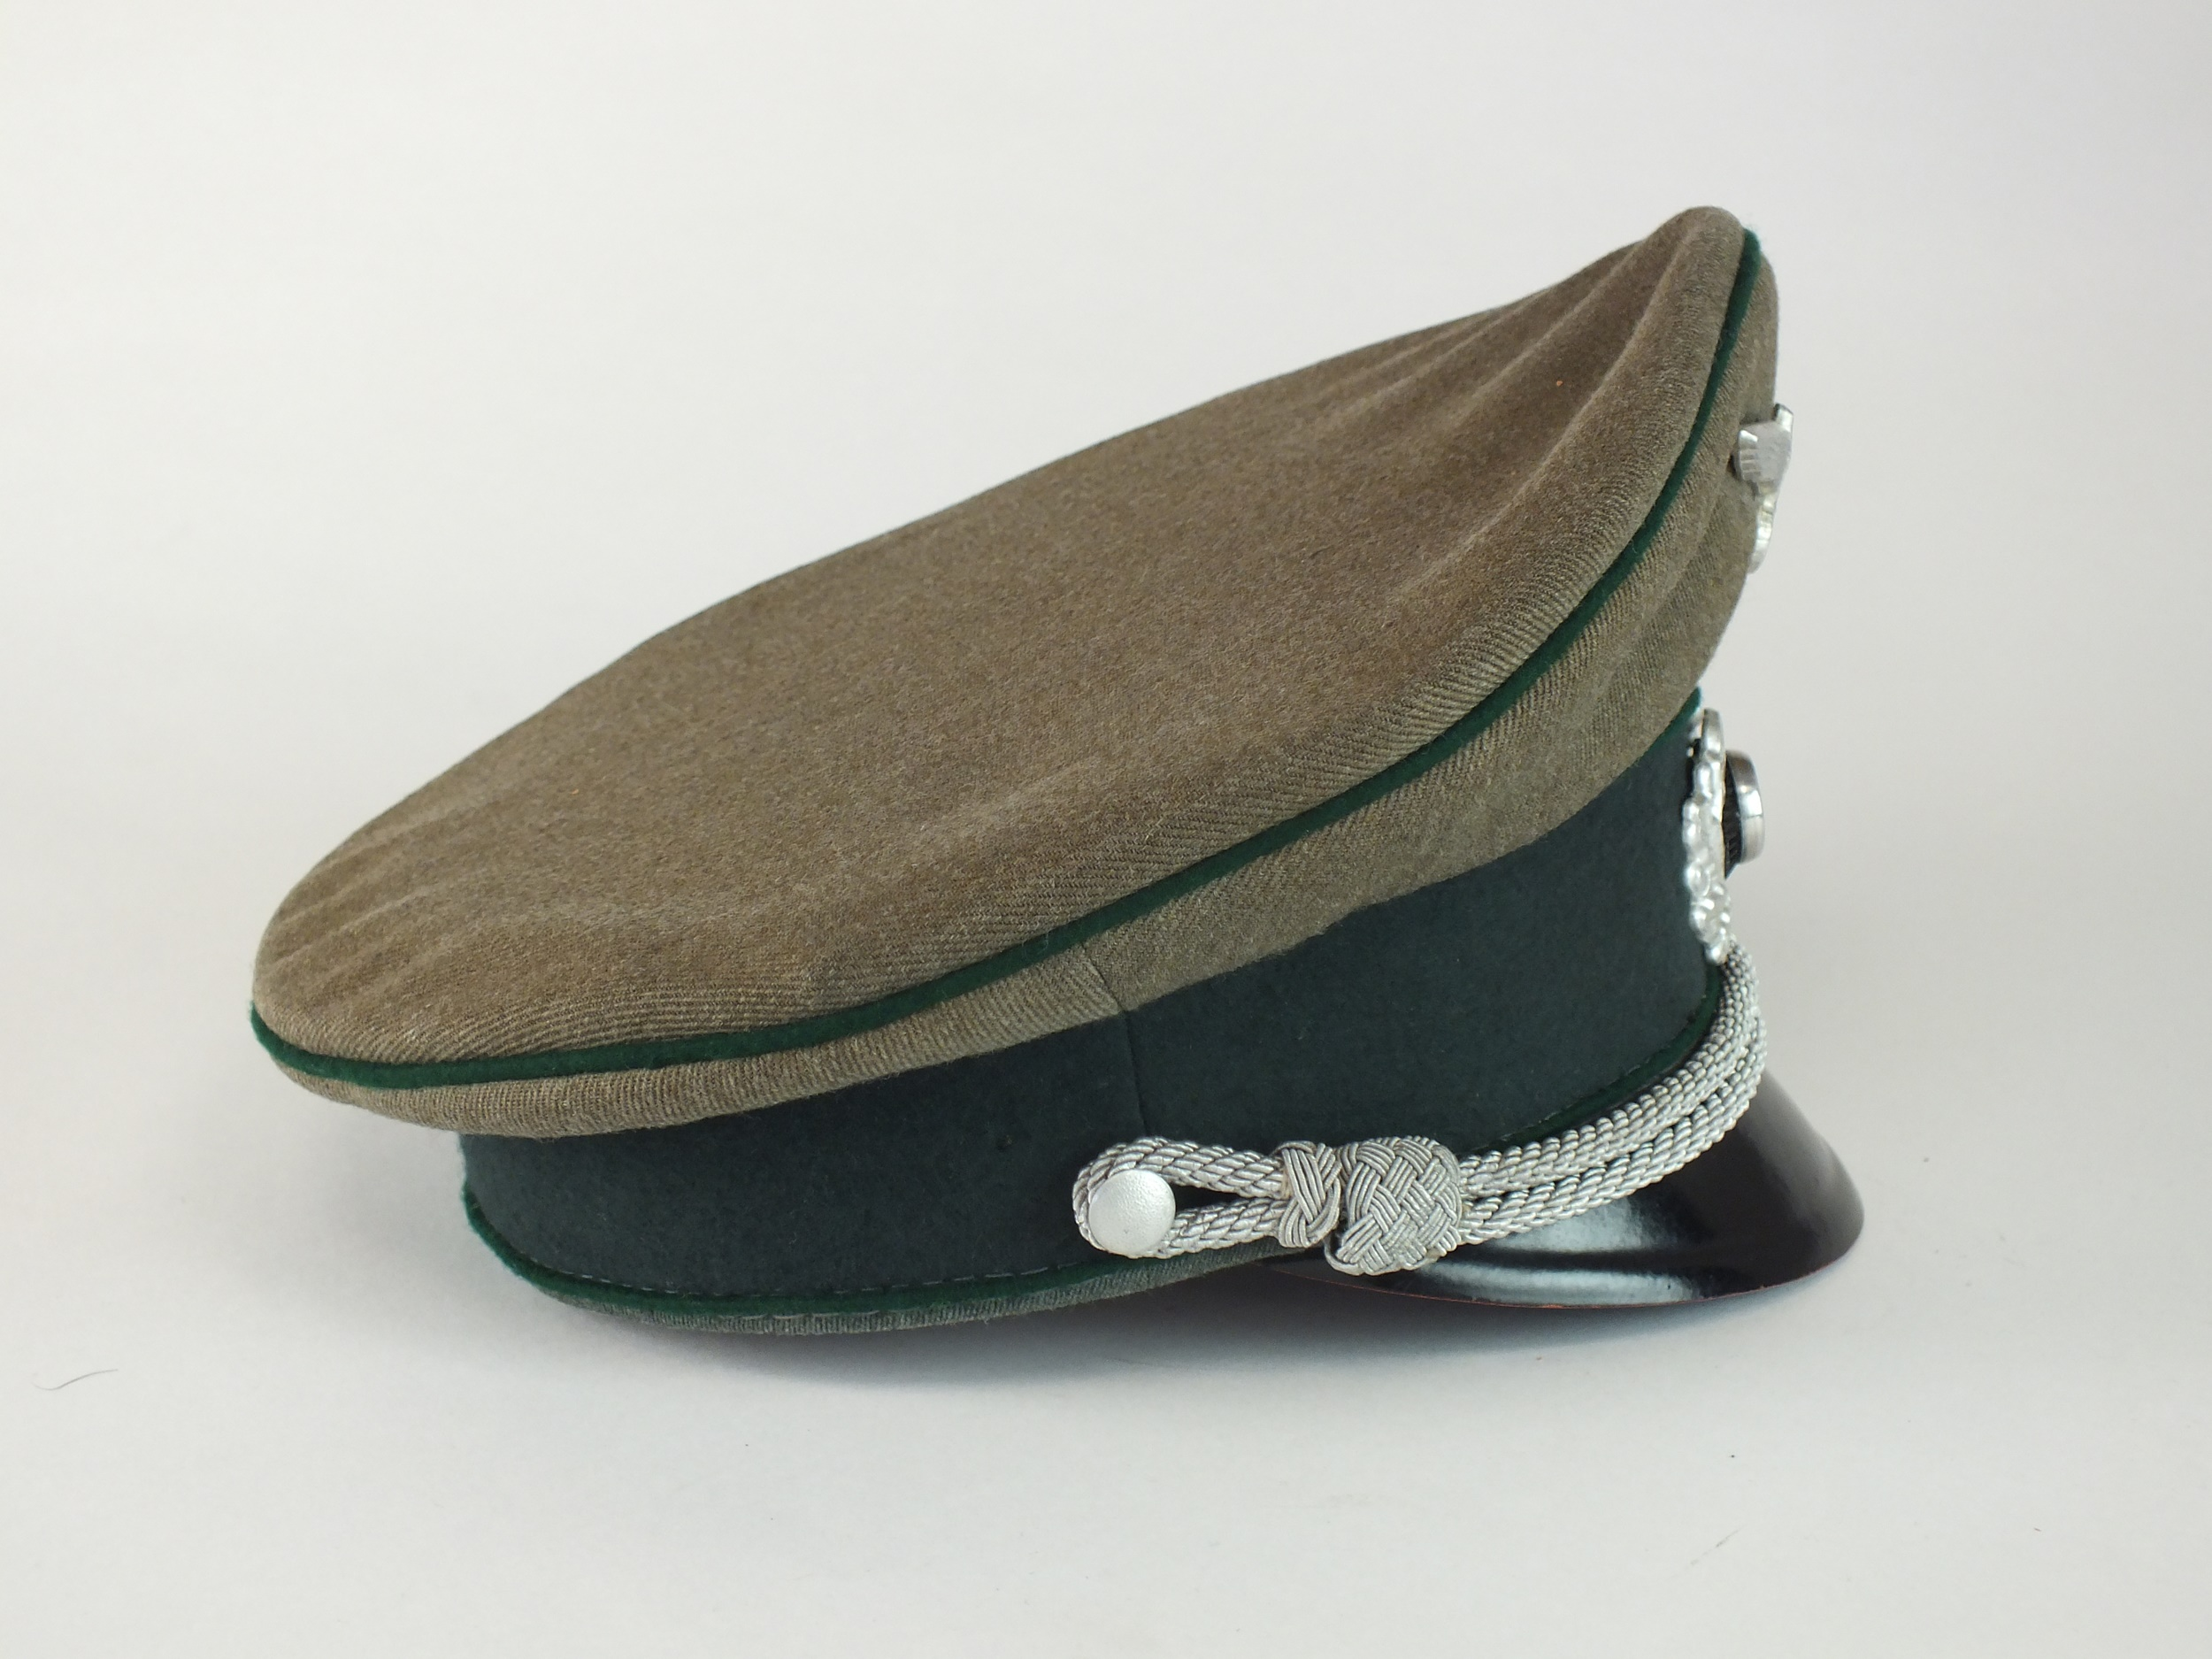 A German Army Administration Officer's visor cap, Austrian-made - Image 2 of 5